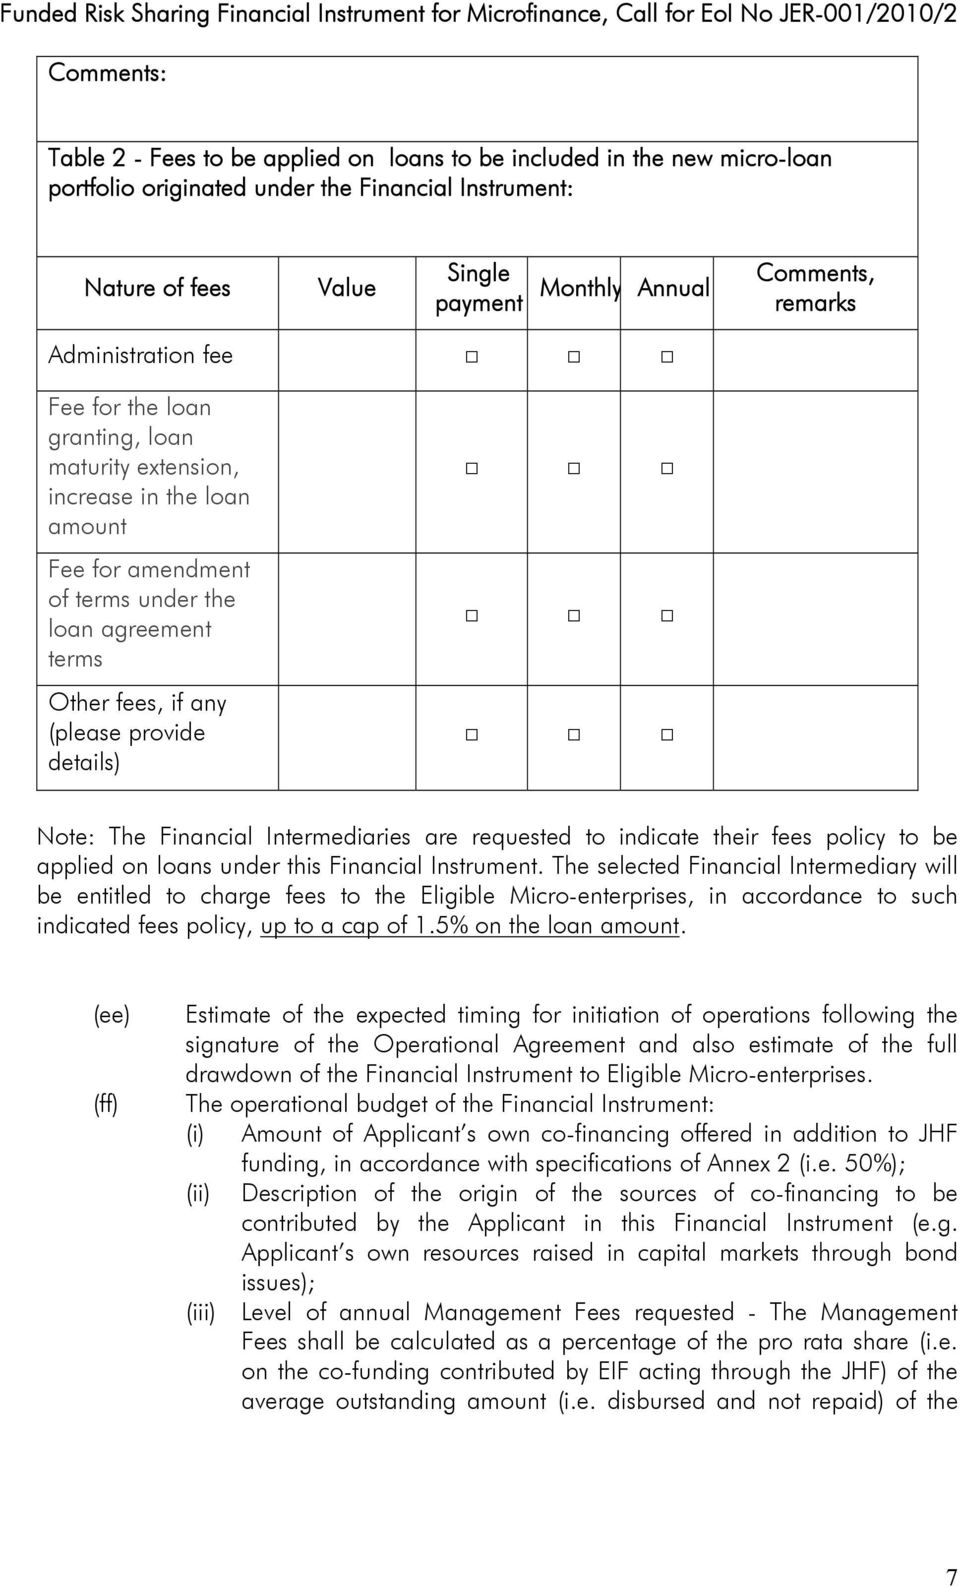 Fee for amendment of terms under the loan agreement terms Other fees, if any (please provide details) Note: The Financial Intermediaries are requested to indicate their fees policy to be applied on